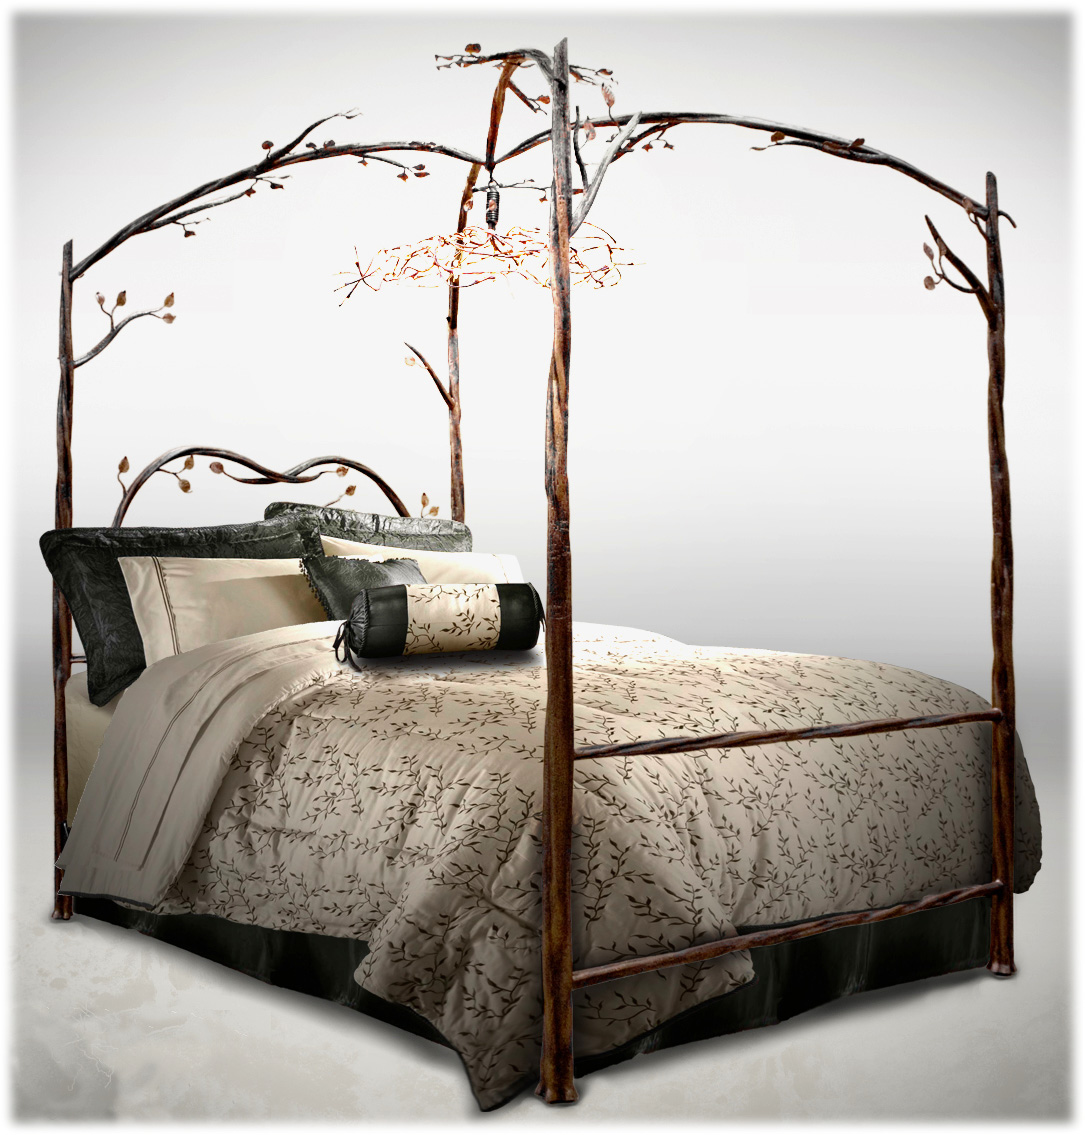 larger image - Canopy Bed Frames